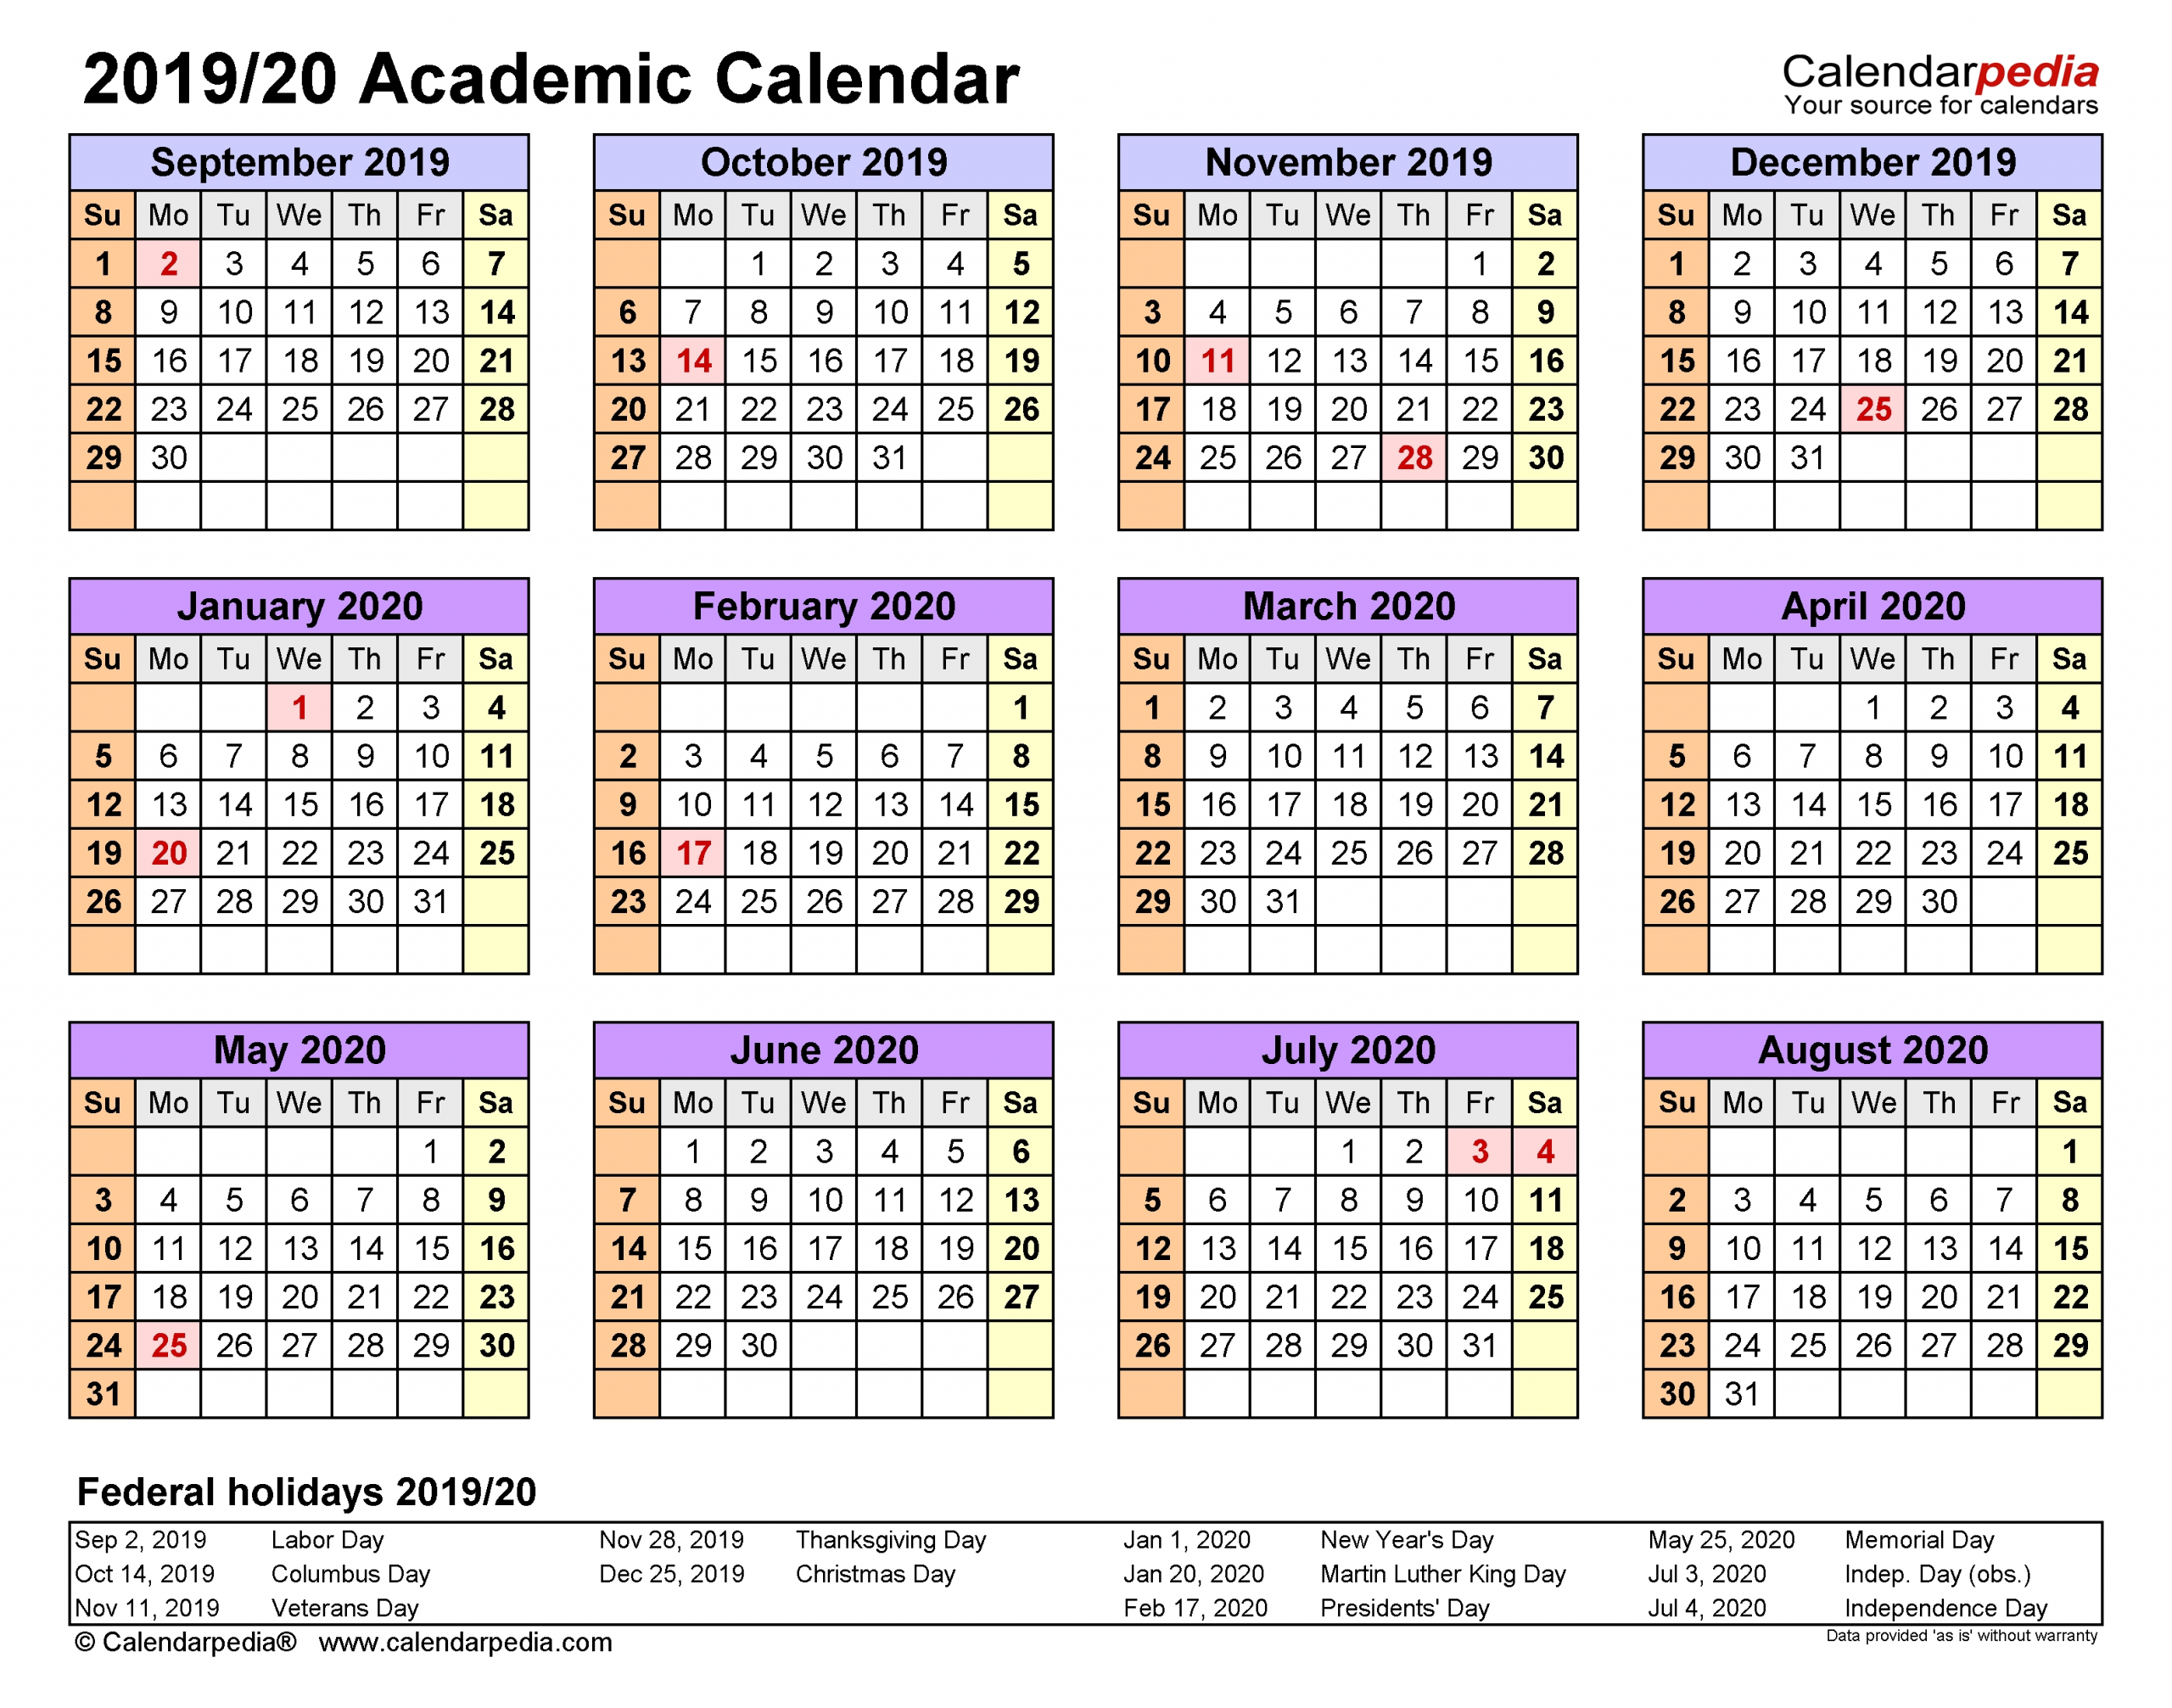 Academic Calendars 2019/2020 - Free Printable Word Templates